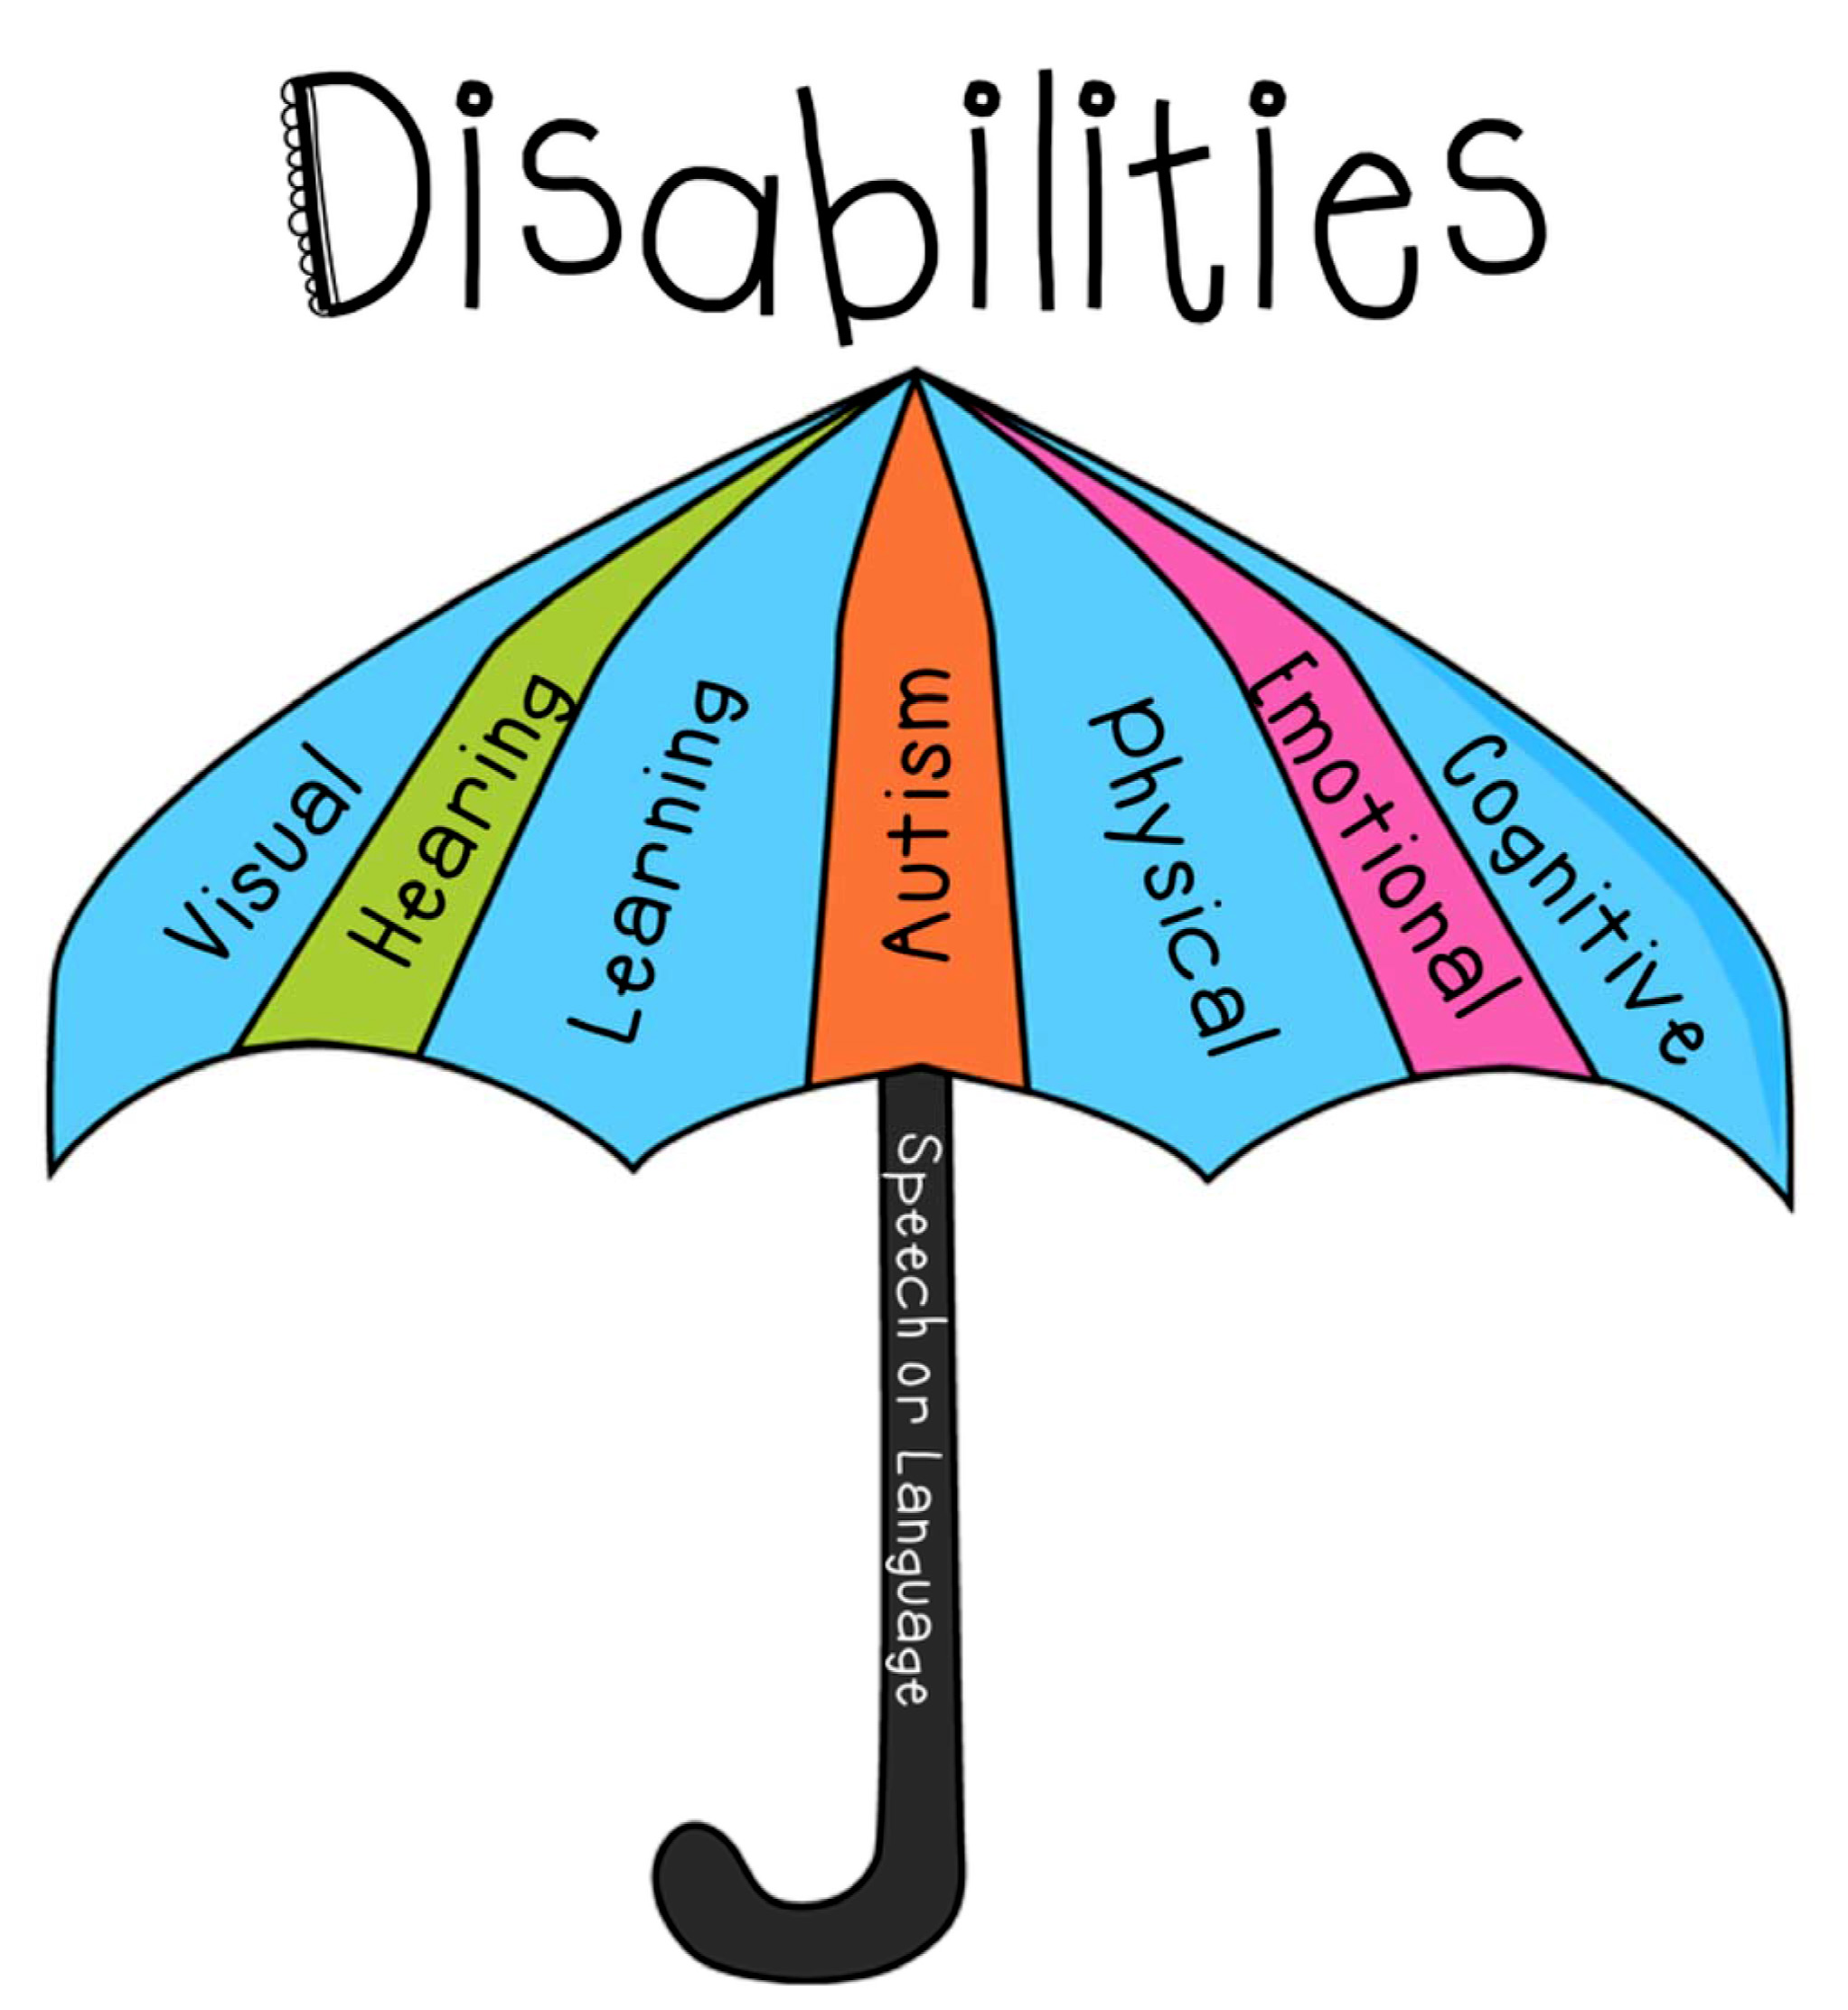 umbrellas with types of disabilities listed on panels and handle